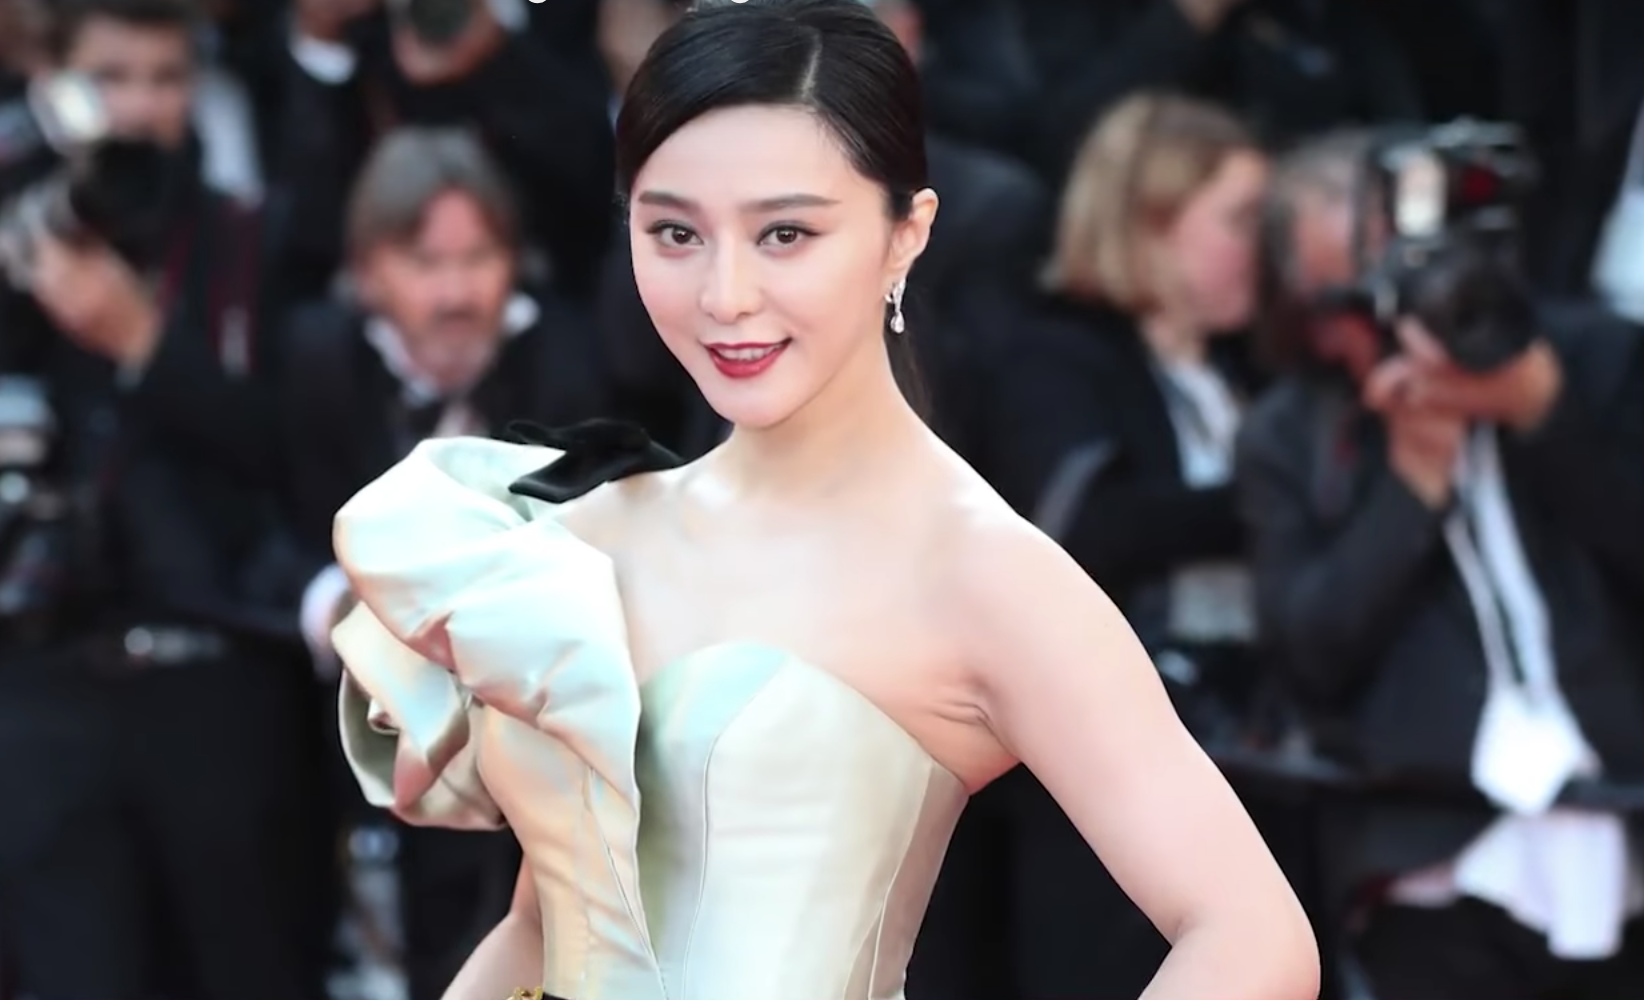 When Fan Bingbing was detained, there was no need for legal processes. (Image: YouTube/Screenshot)